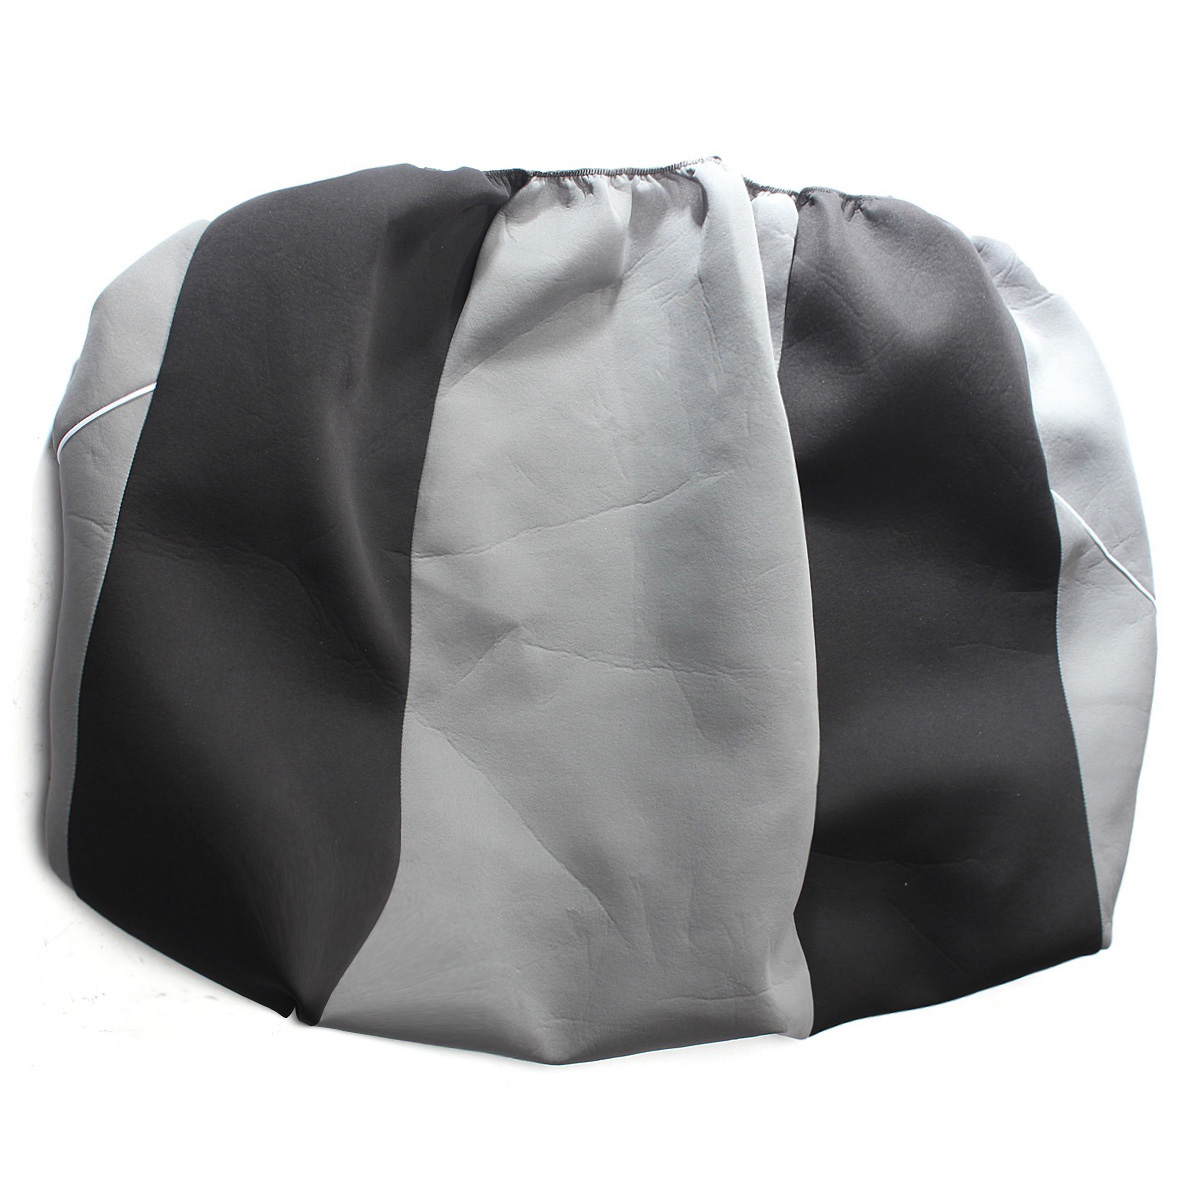 Universal Heavy Duty Car Front Seat Covers Protectors Waterproof Resistant : Lazada PH